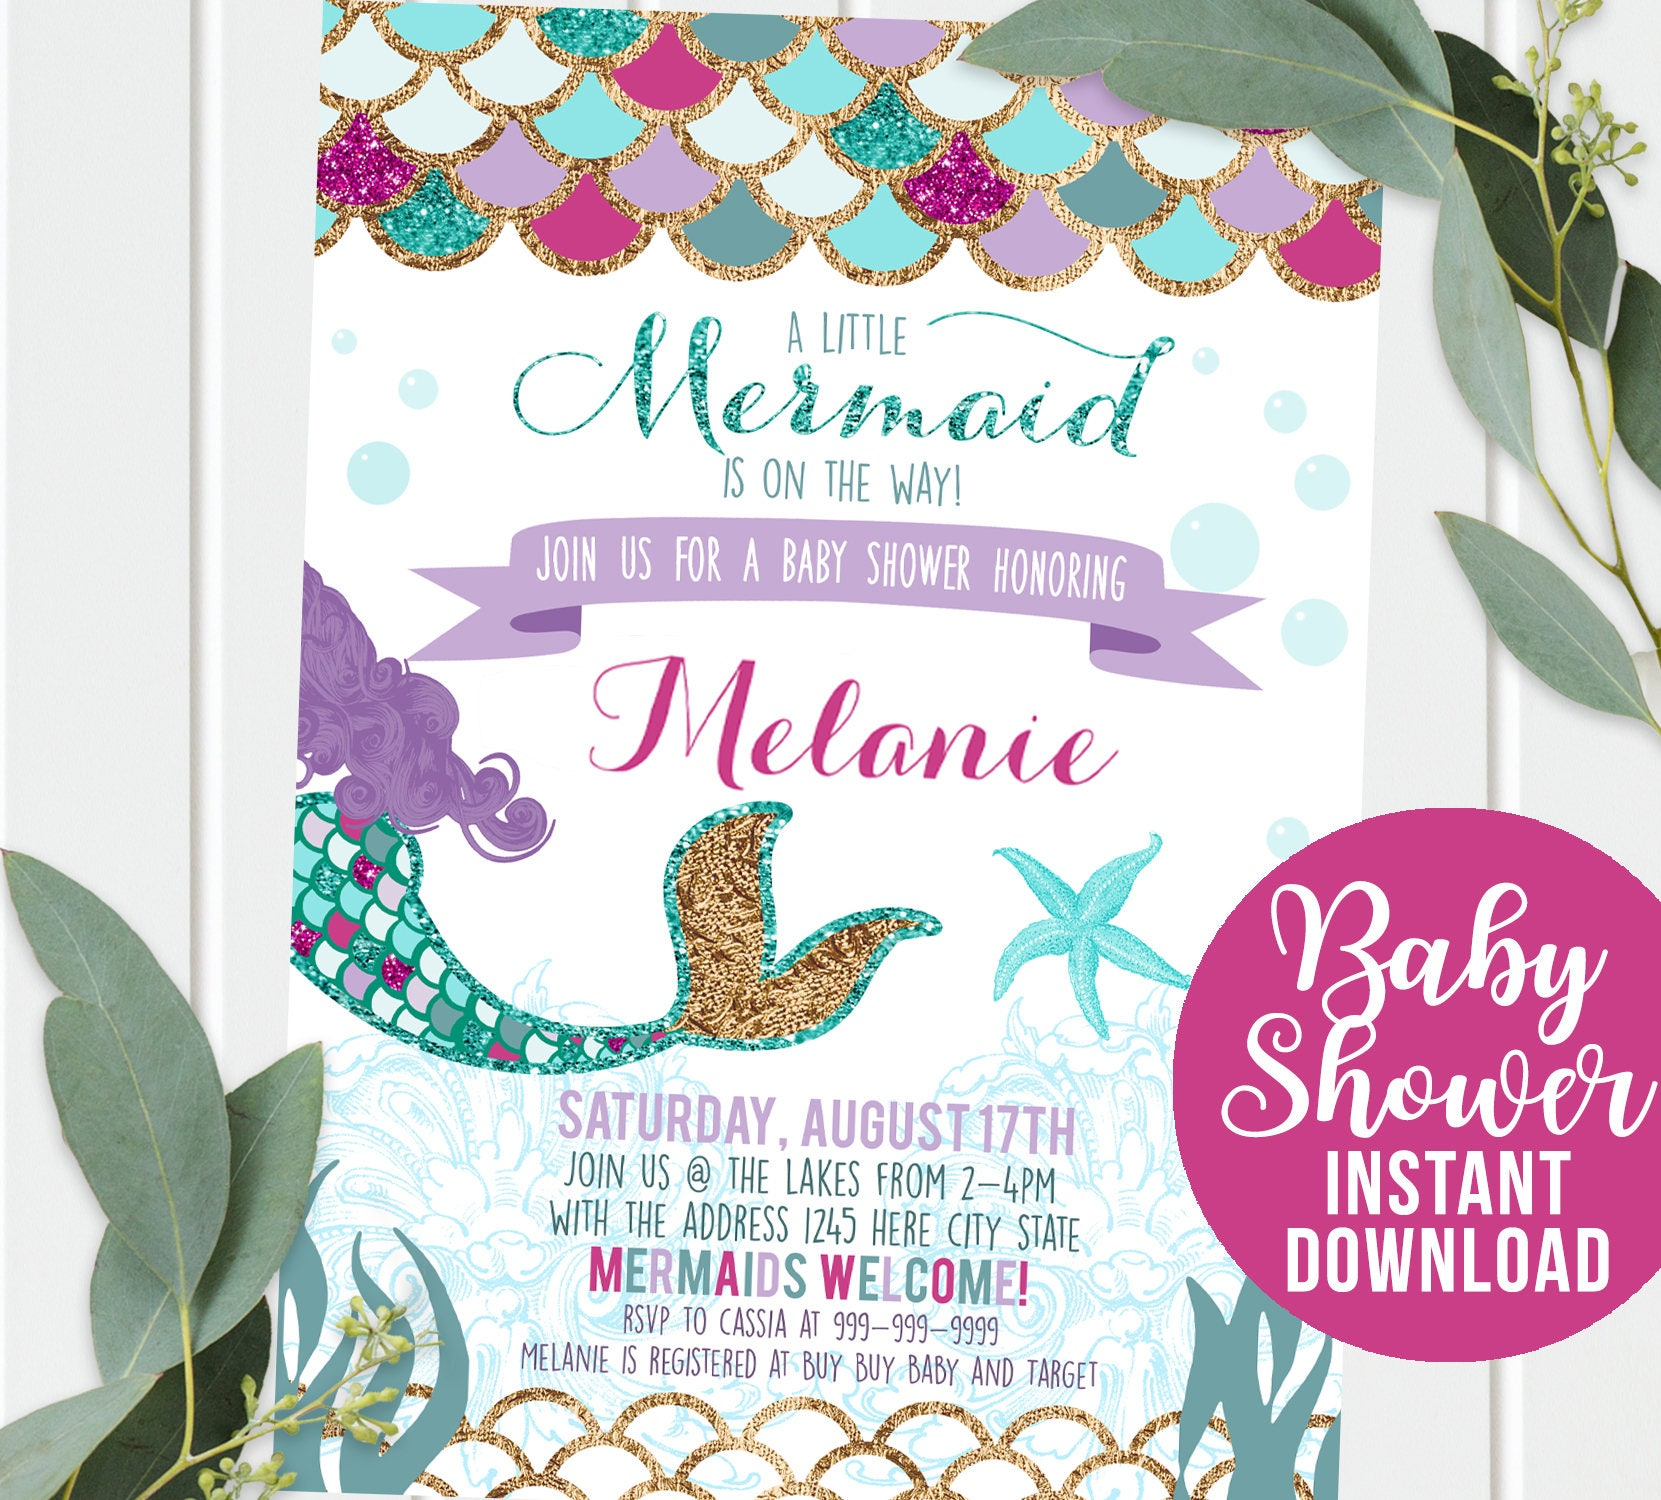 Mermaid Baby Shower Invitation Mermaid Purple Gold Sparkle